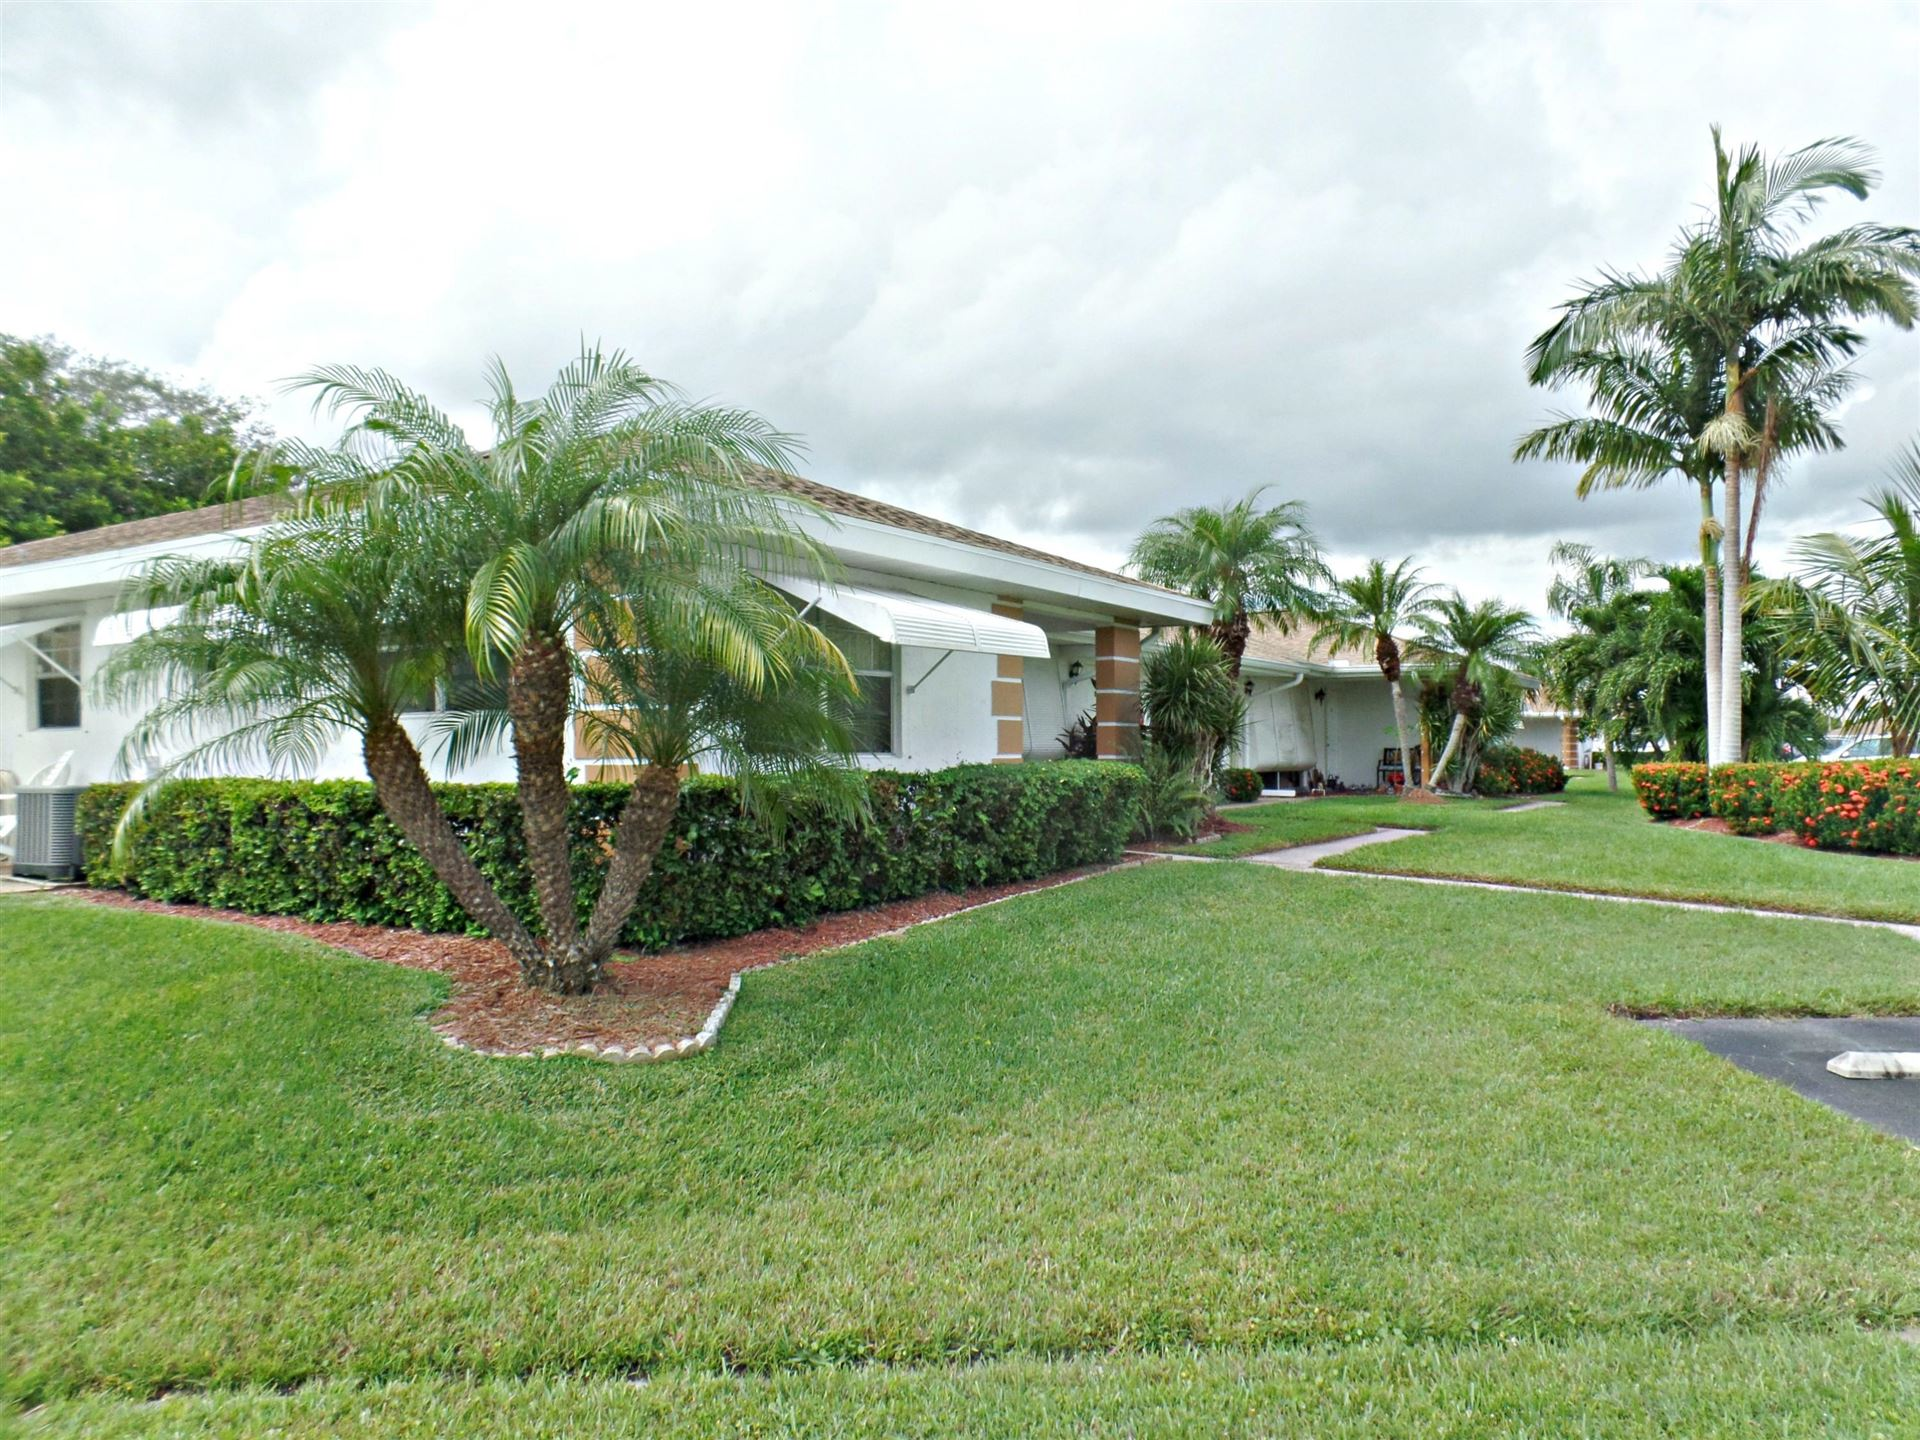 Photo of 631 Pines Knoll Drive #A, Fort Pierce, FL 34982 (MLS # RX-10658892)